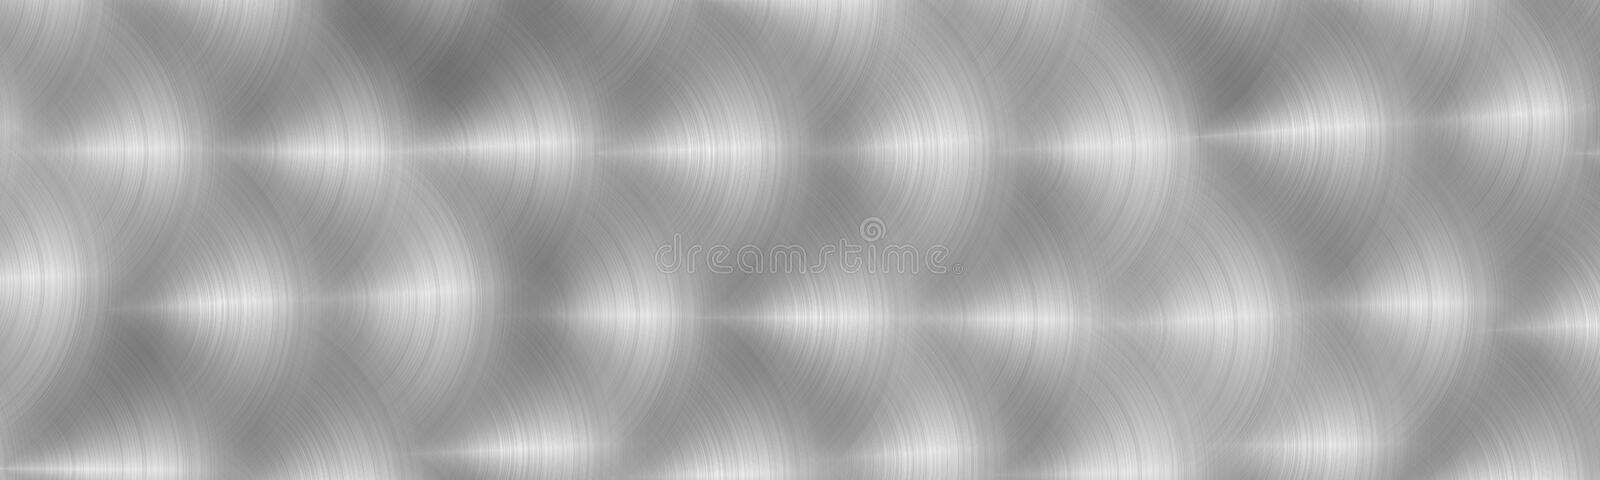 Brushed gray metal surface. Texture of metal. Abstract steel background.  Panoramic image. Brushed gray metal surface. Texture of metal. Abstract steel stock illustration